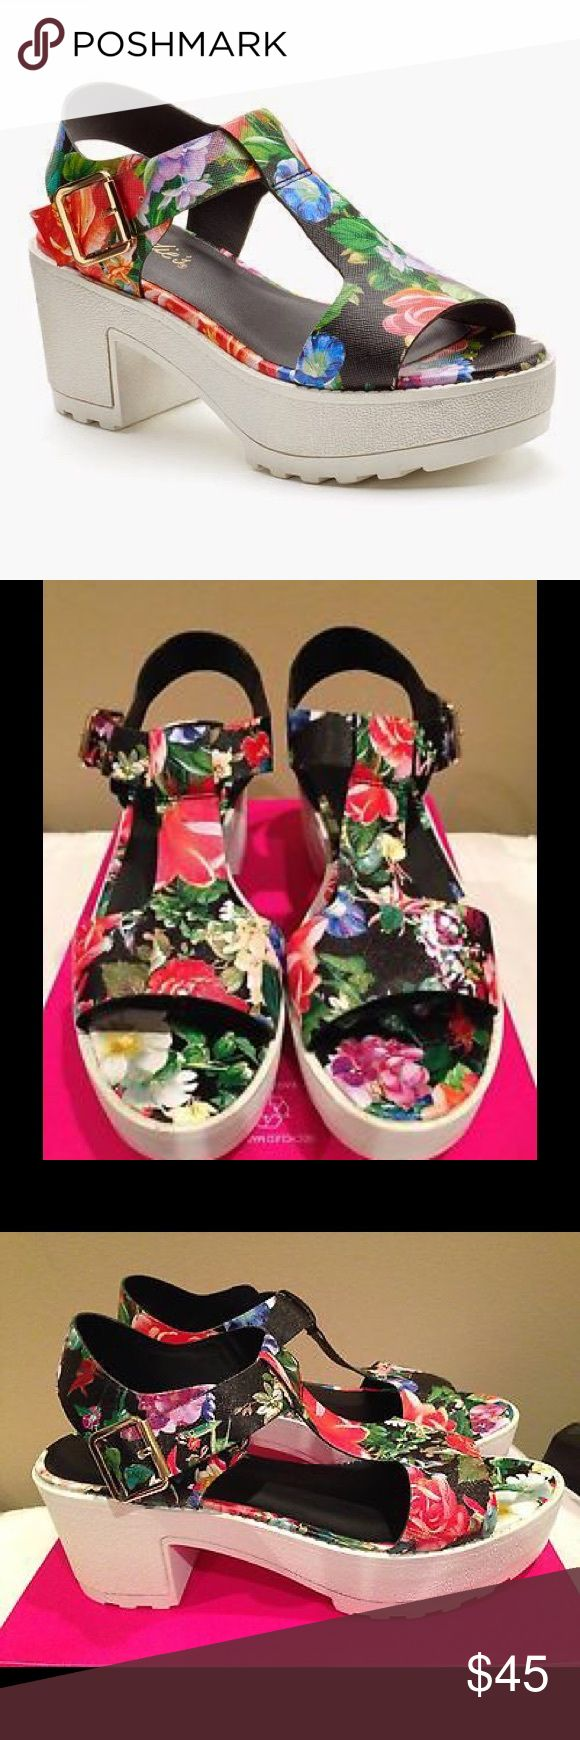 """Candie's Black Floral Platform Sandals NWT Candie's black floral platform sandals will add fun fabulous style to your wardrobe! They are perfect for the beach or on the city streets! * Upper/lining/outer sole: Man made * Padded foot bed and heal bed * Silver-tone adjustable buckle * Platform w/block heel *1"""" platform/2 3/4"""" heel height  *Bundle Discounts * No Trades * Smoke free Candie's Shoes Sandals"""